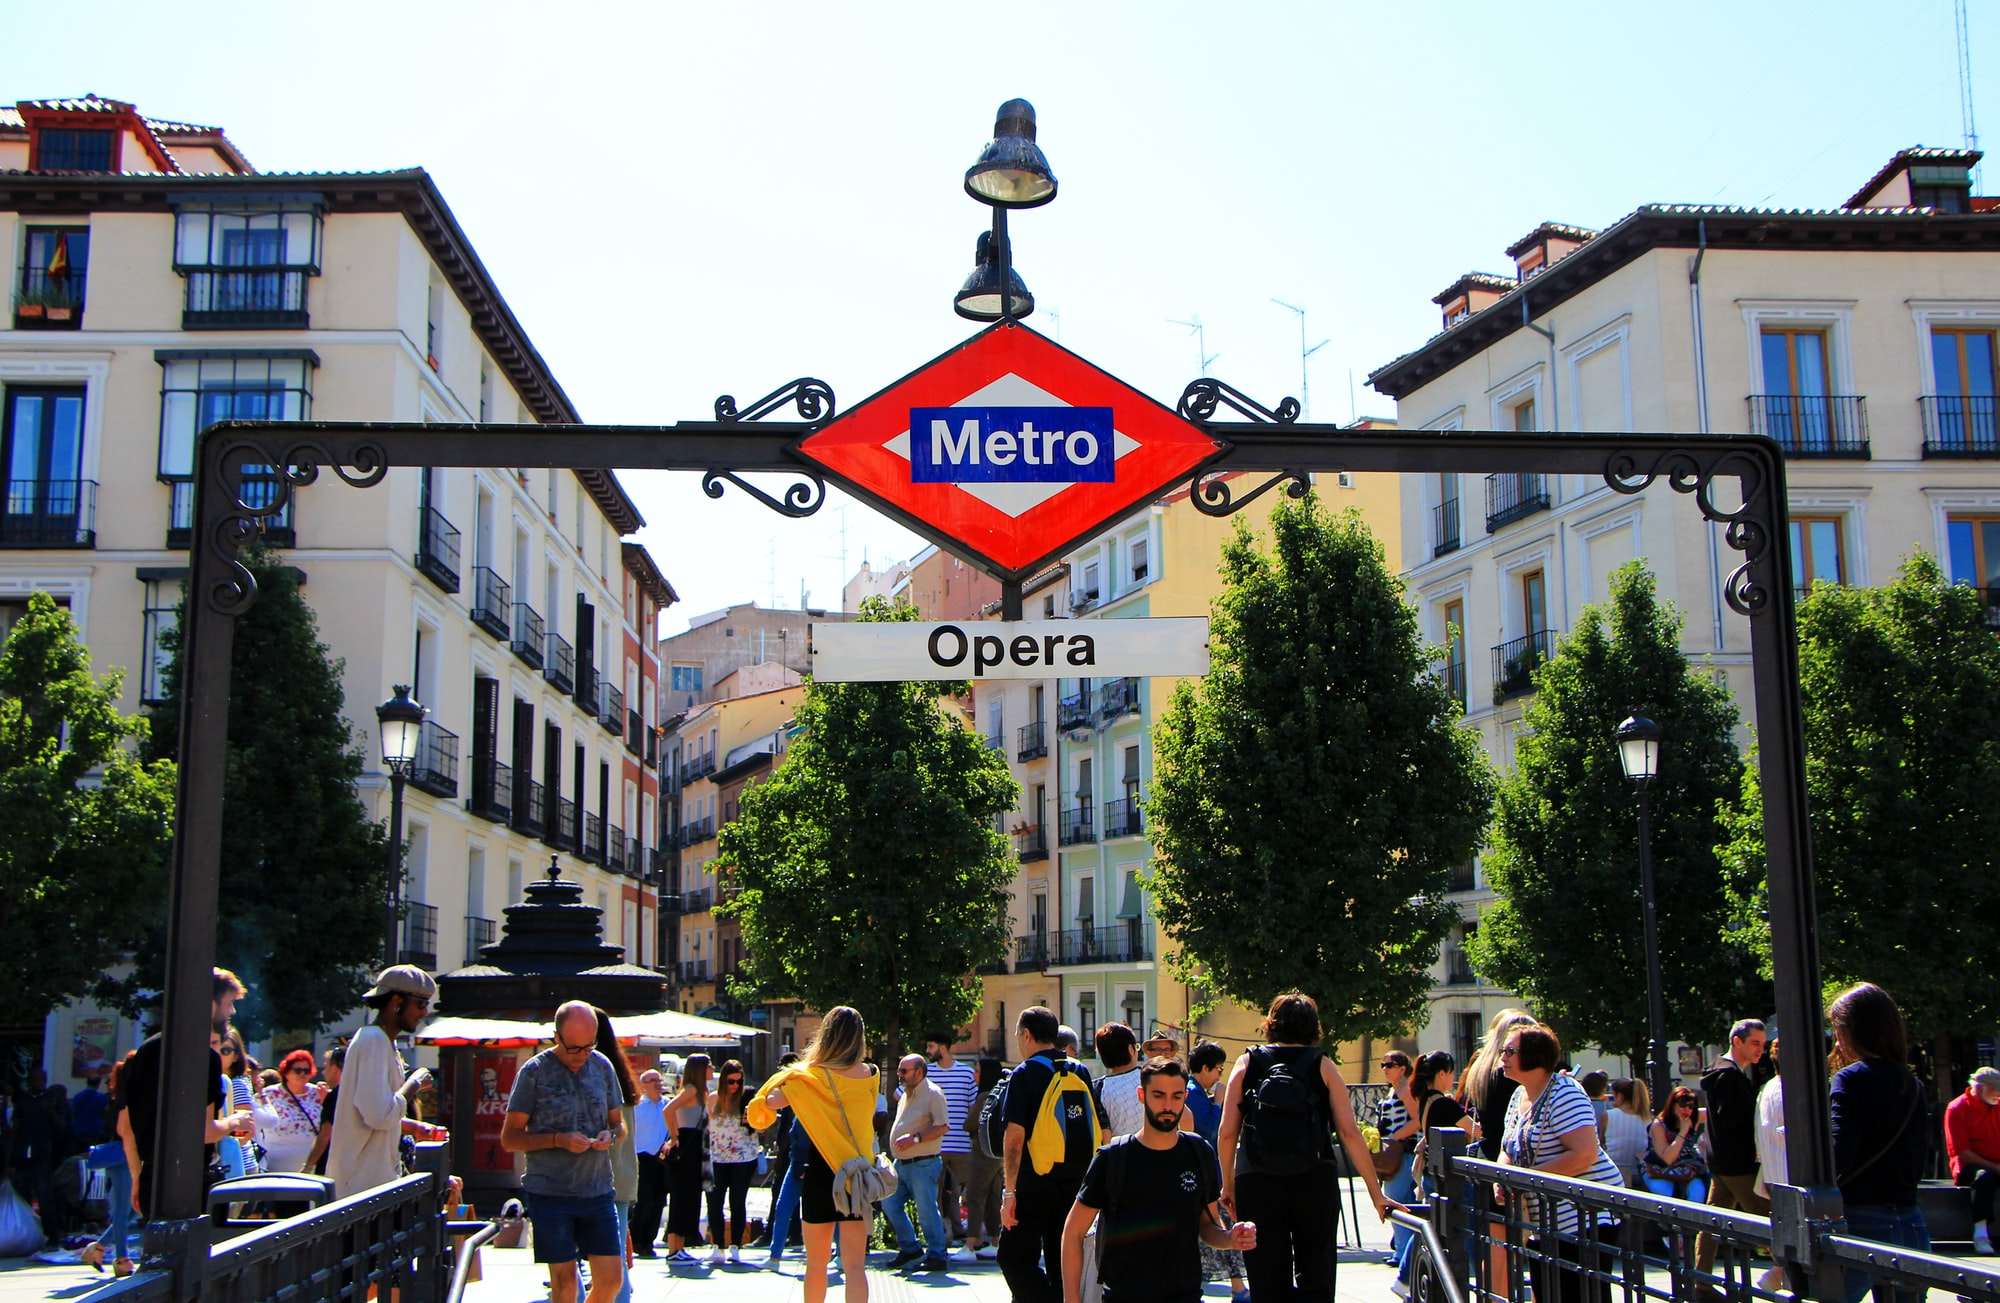 Madrid metro has many lines and is very crowded on weekdays